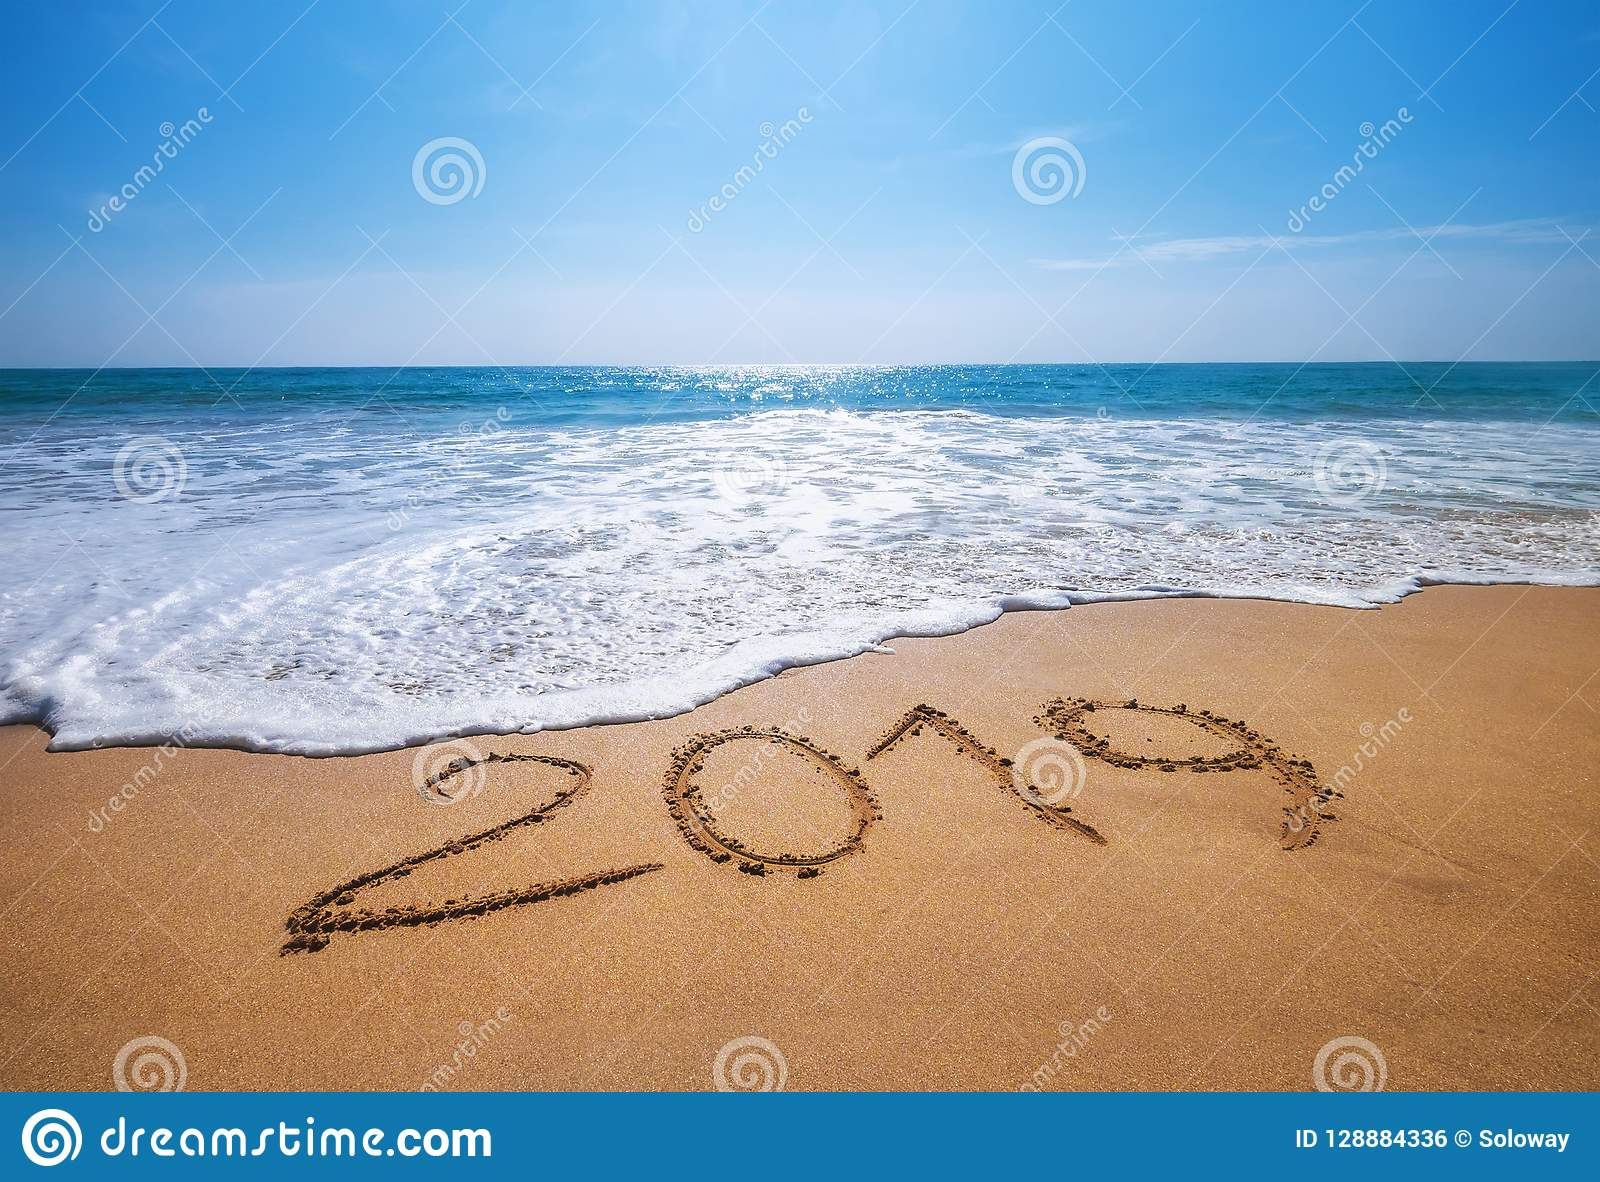 happy new year 2019 is coming concept sandy tropical ocean beach